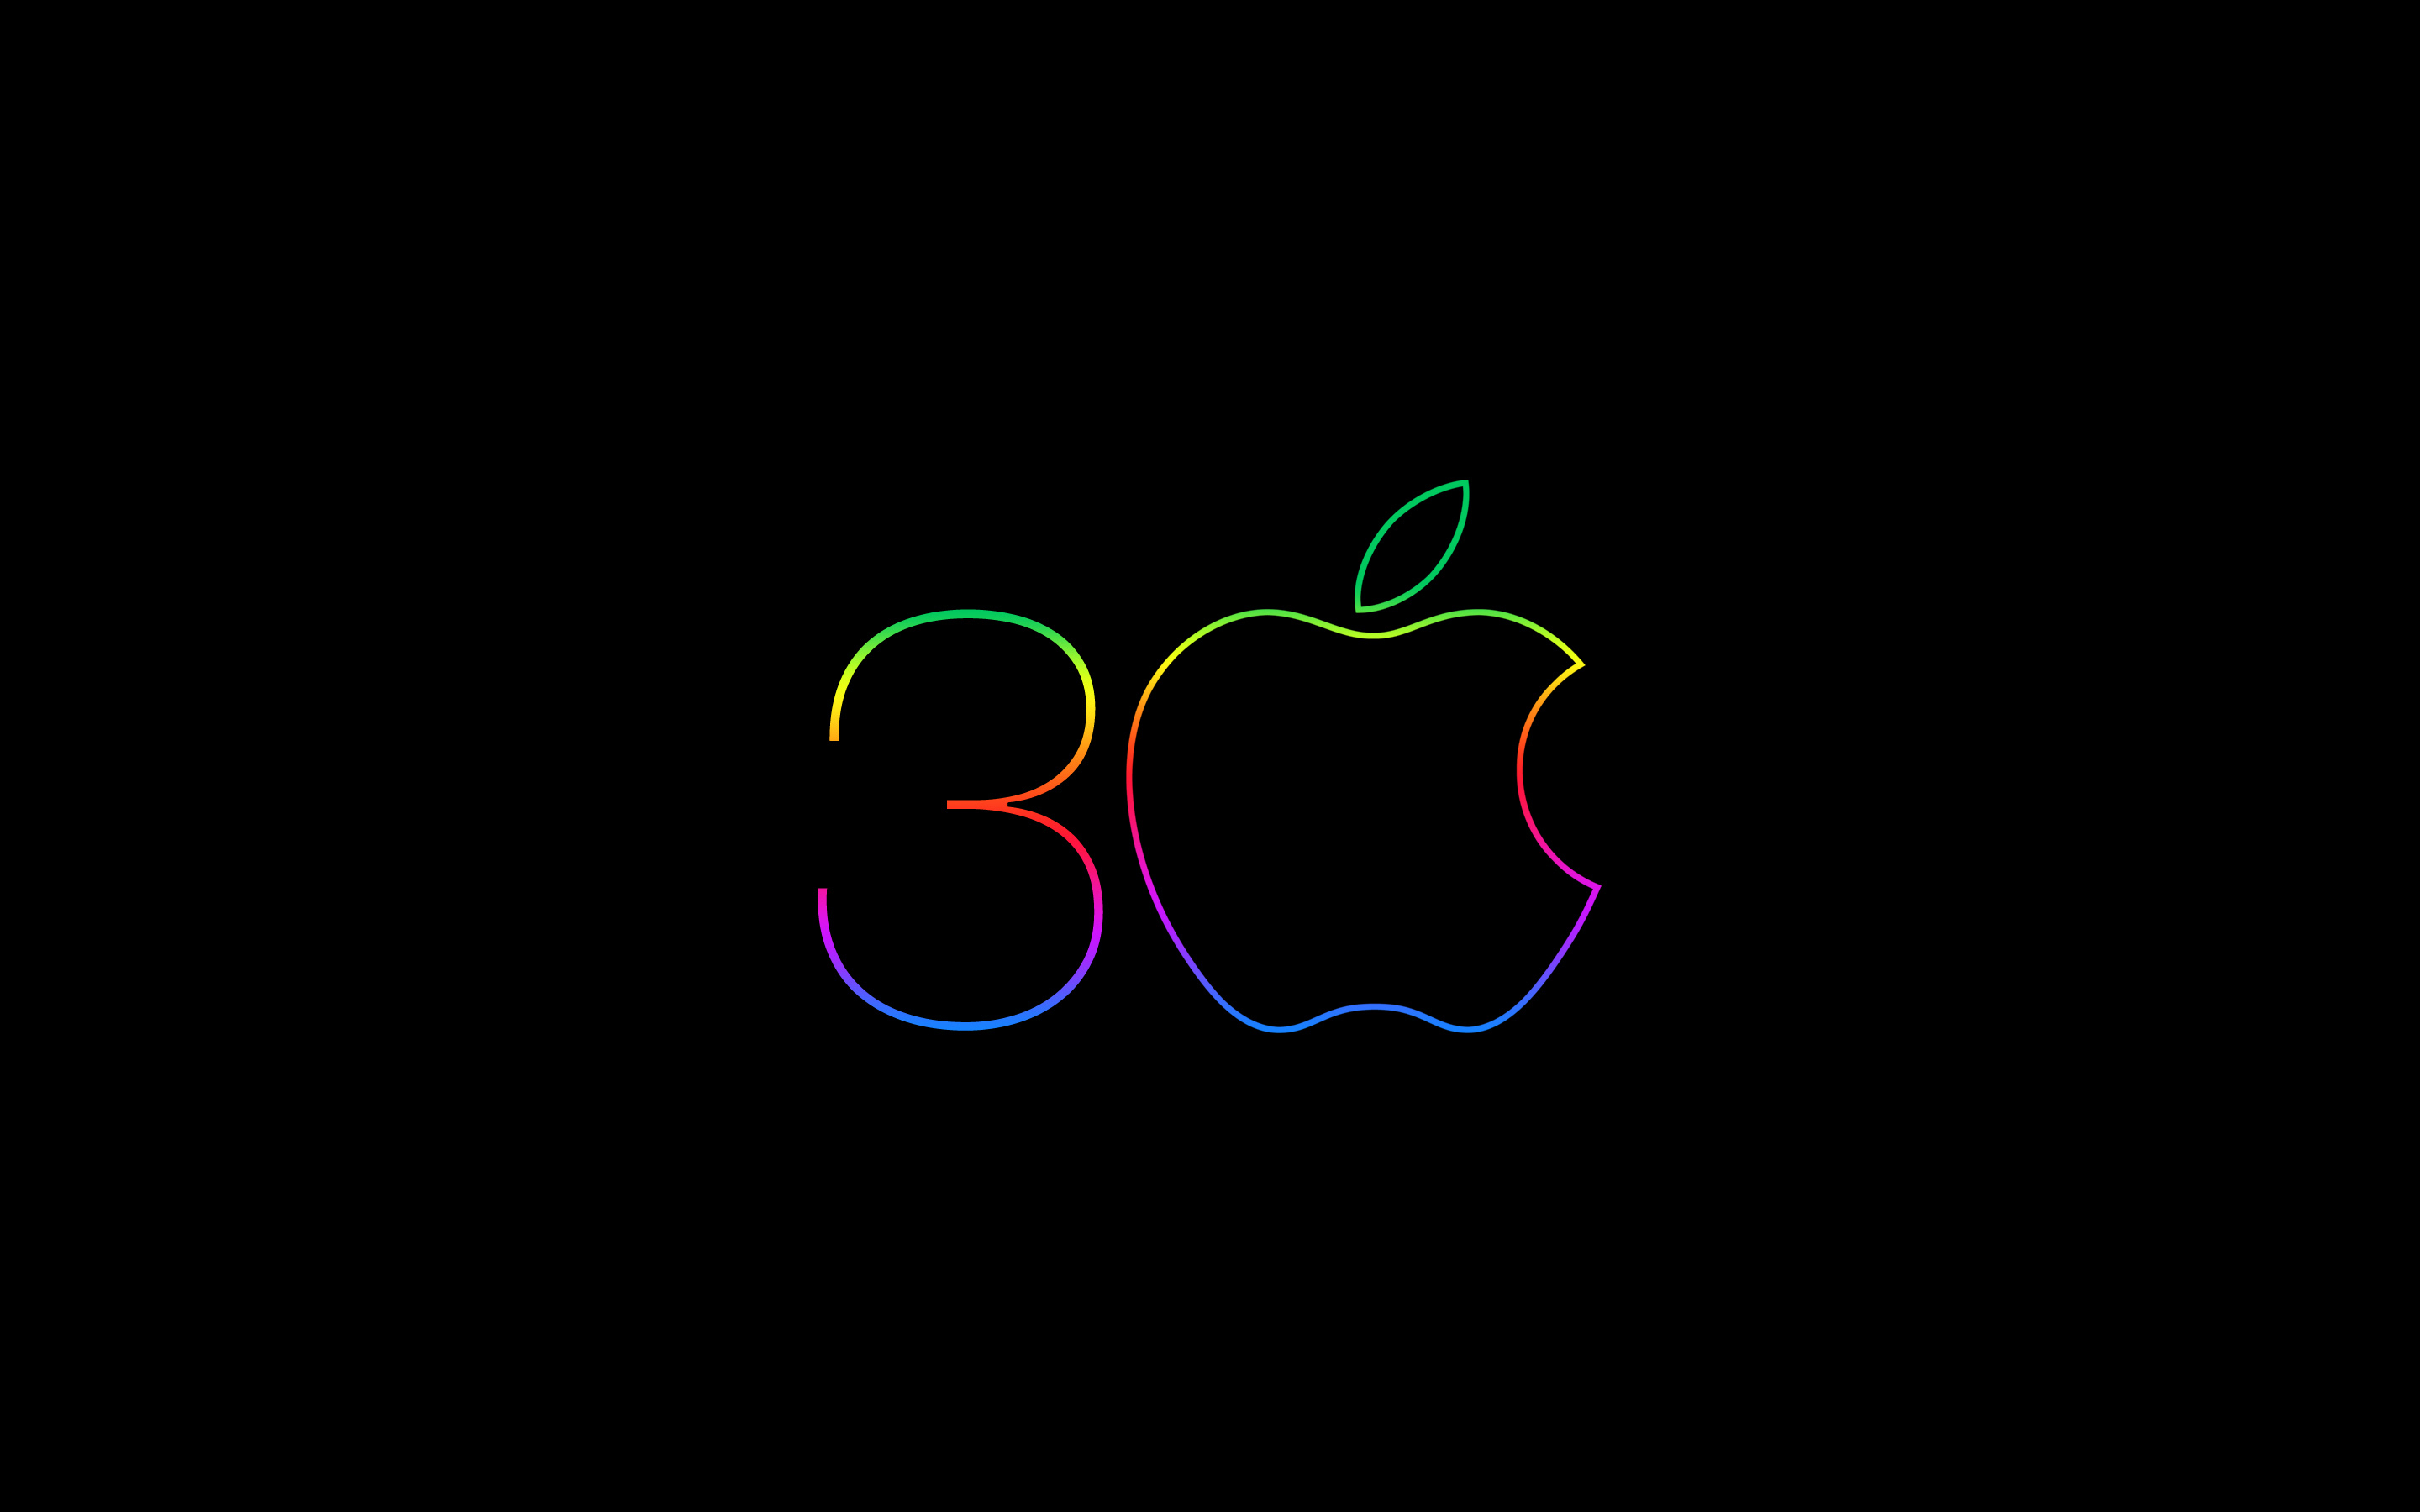 Gambar Wallpaper Hp Apple Keren Gasebo Wallpaper